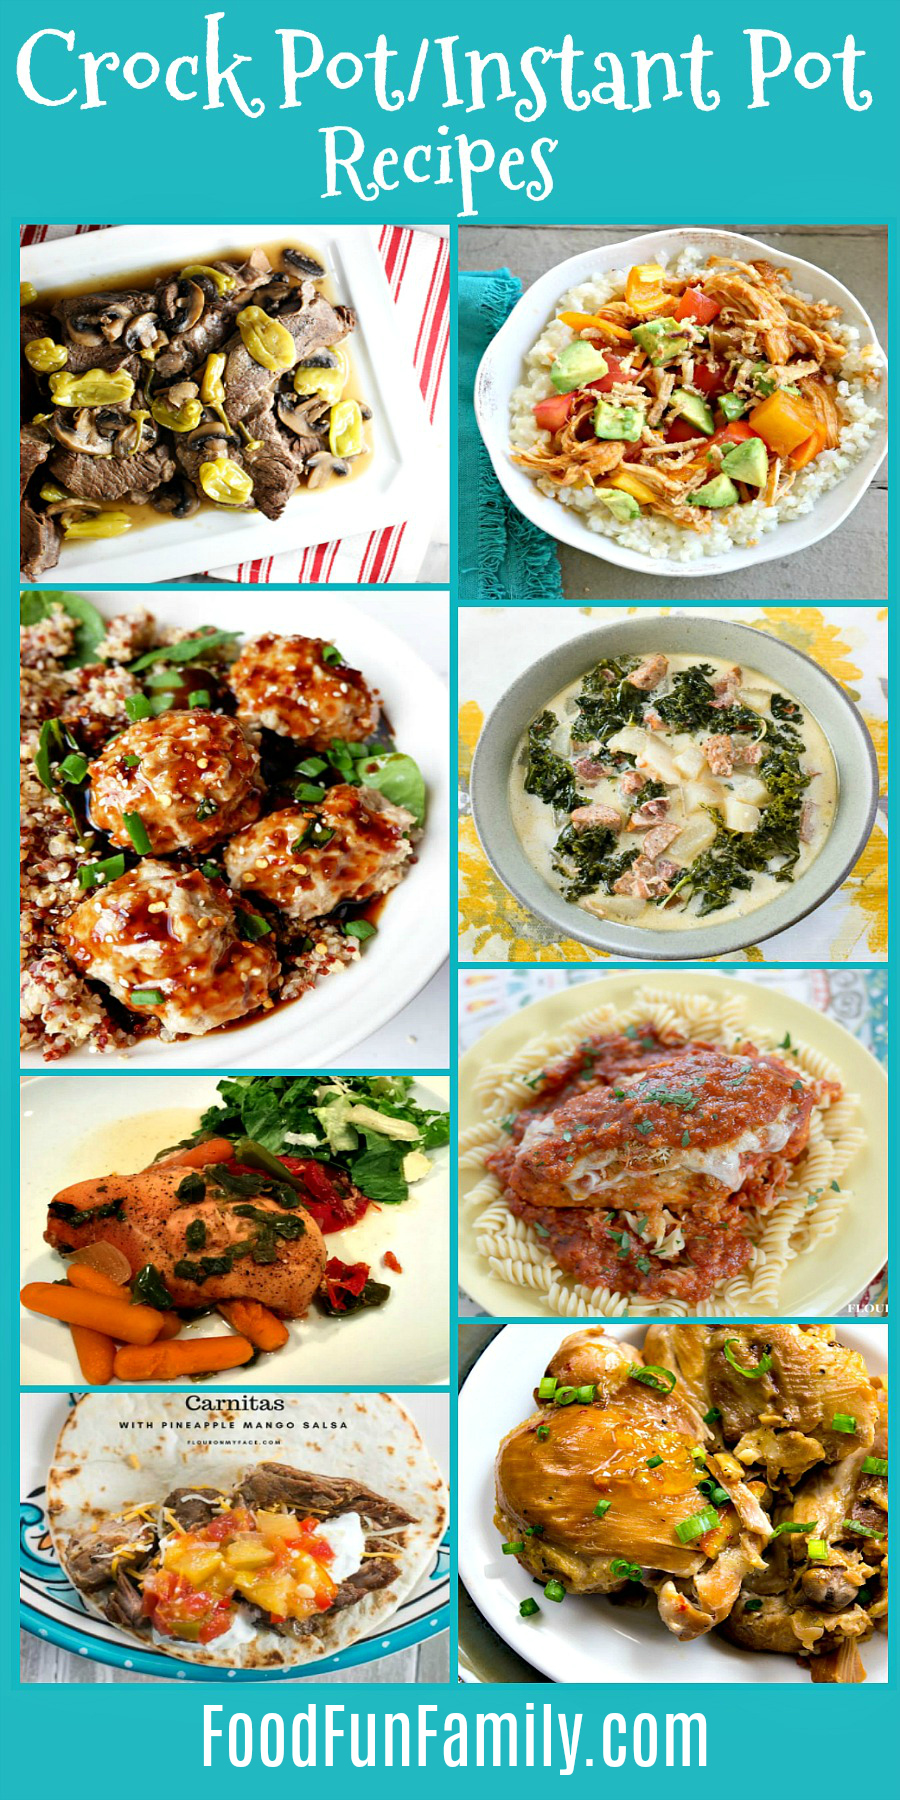 Crock Pot and Instant Pot Recipes Delicious Dishes Recipe Party